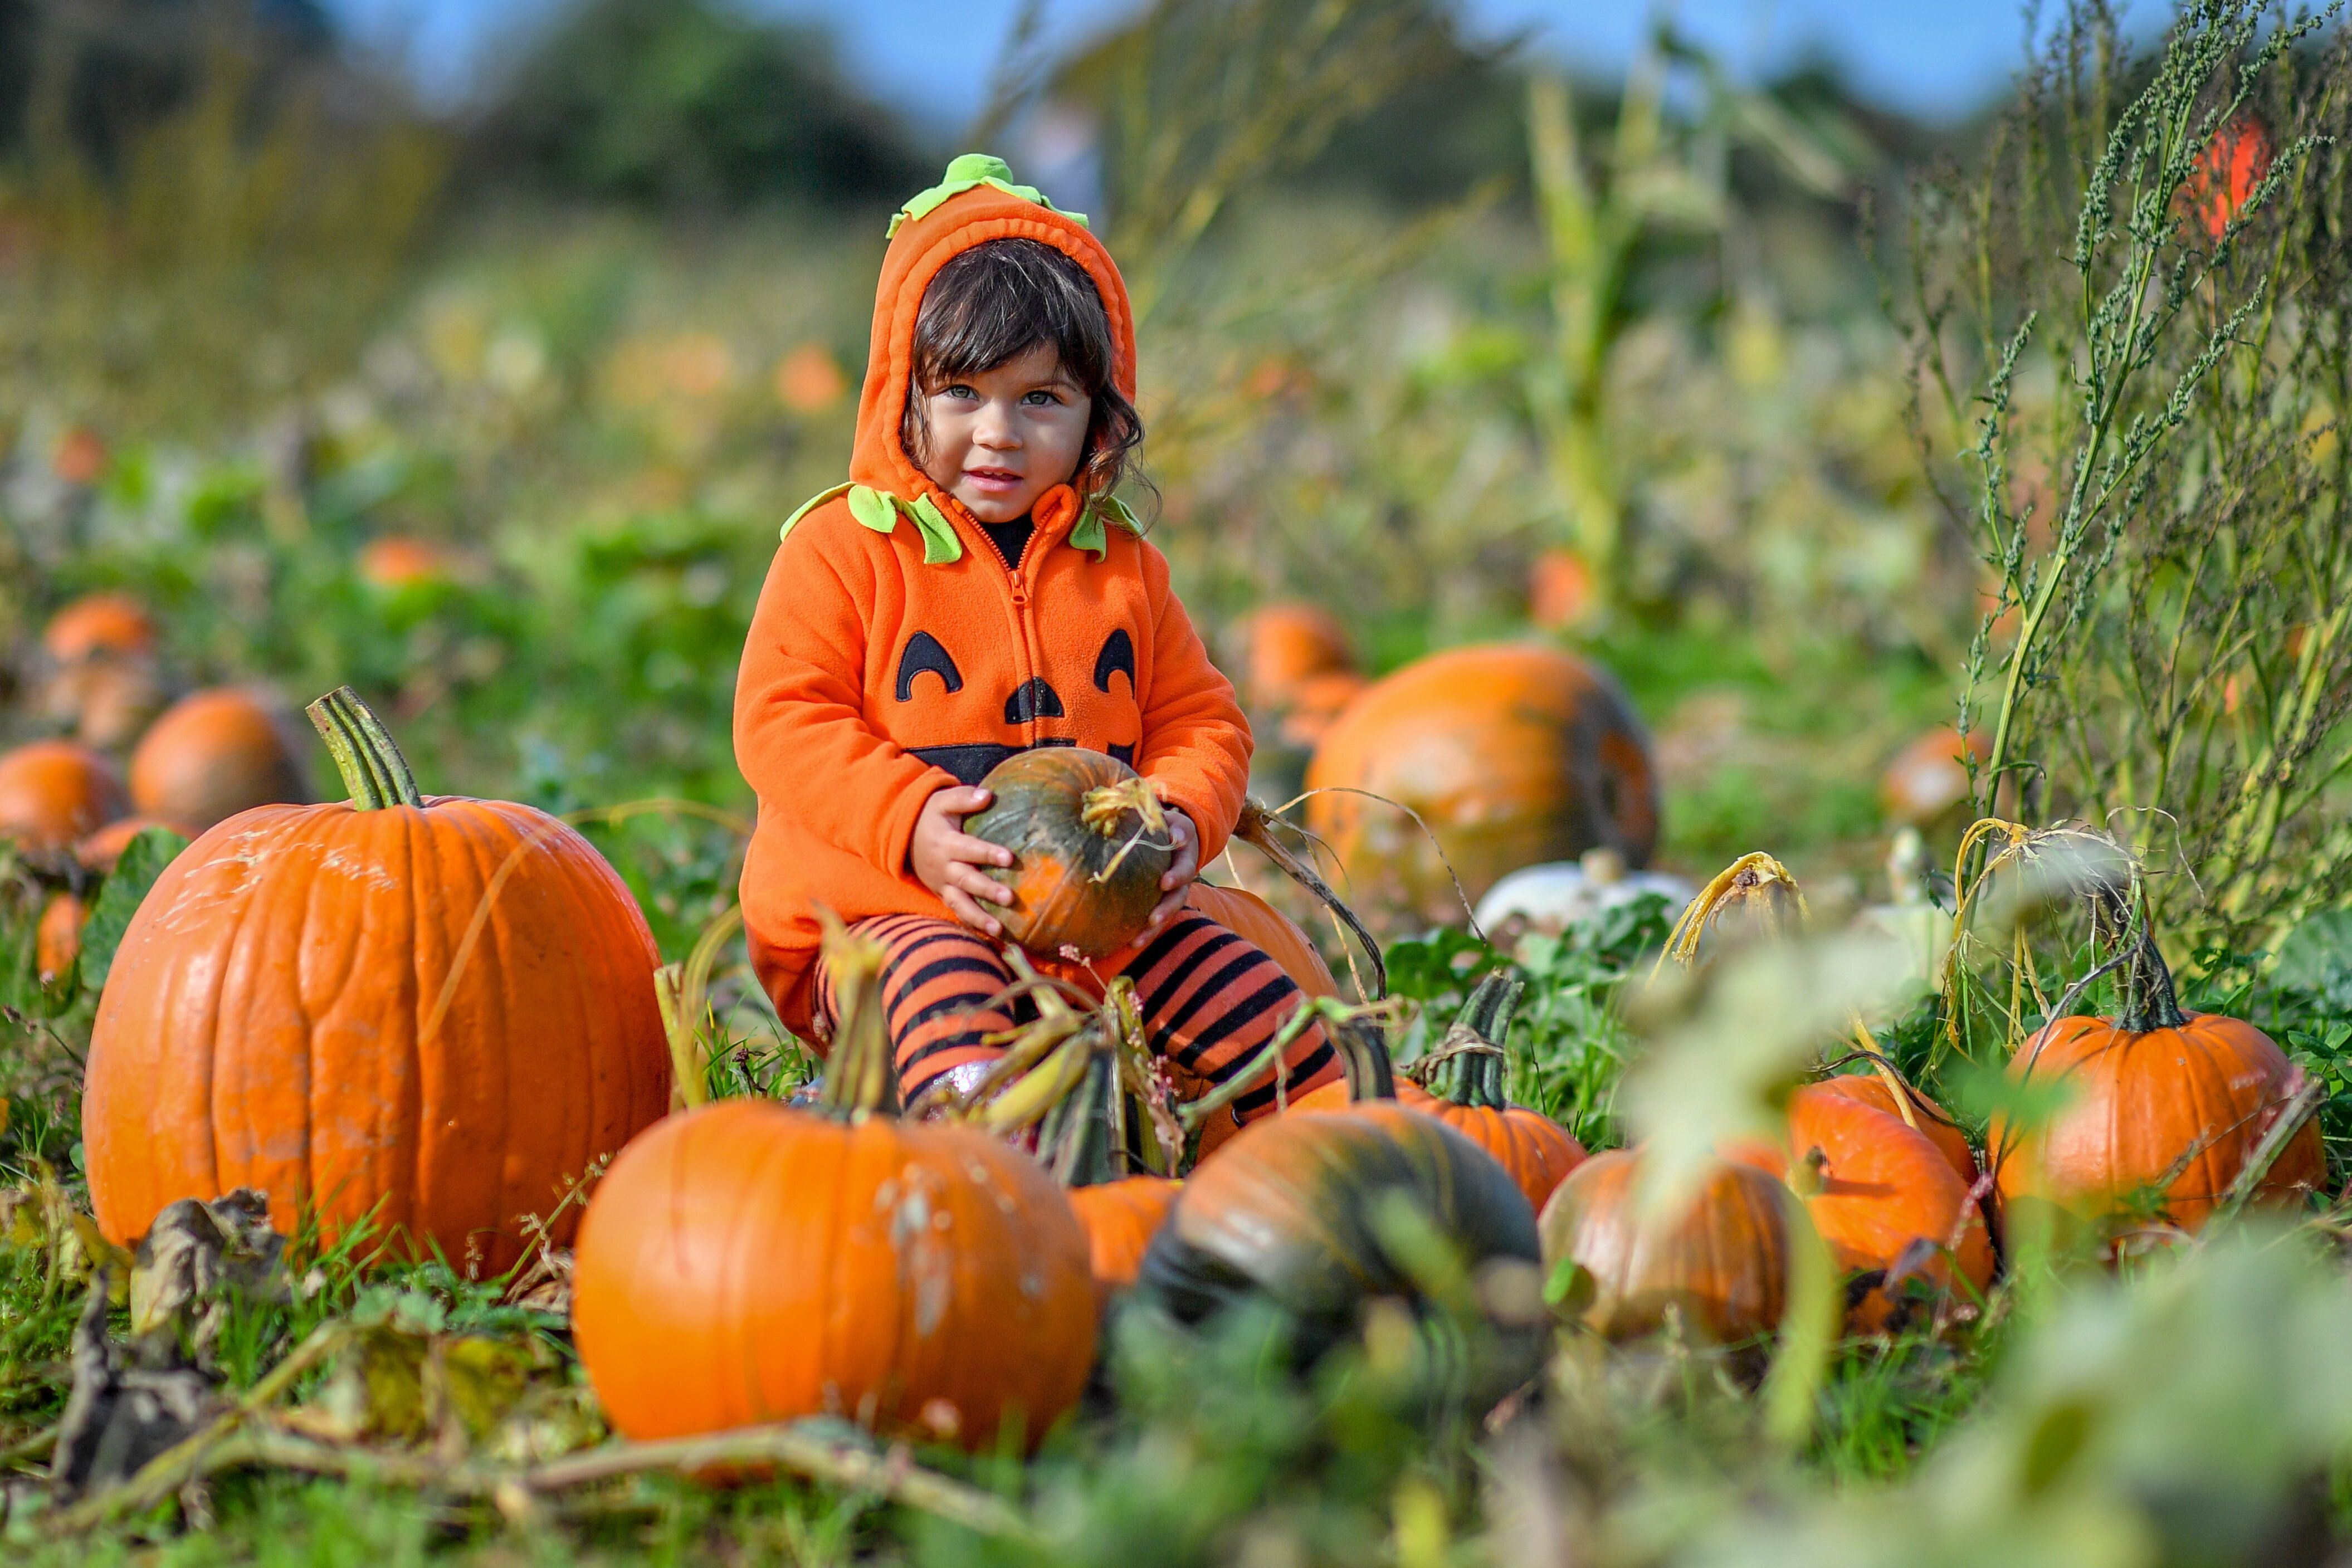 20 Pumpkin Patches To Visit For The Best Family Fun (And Pics)